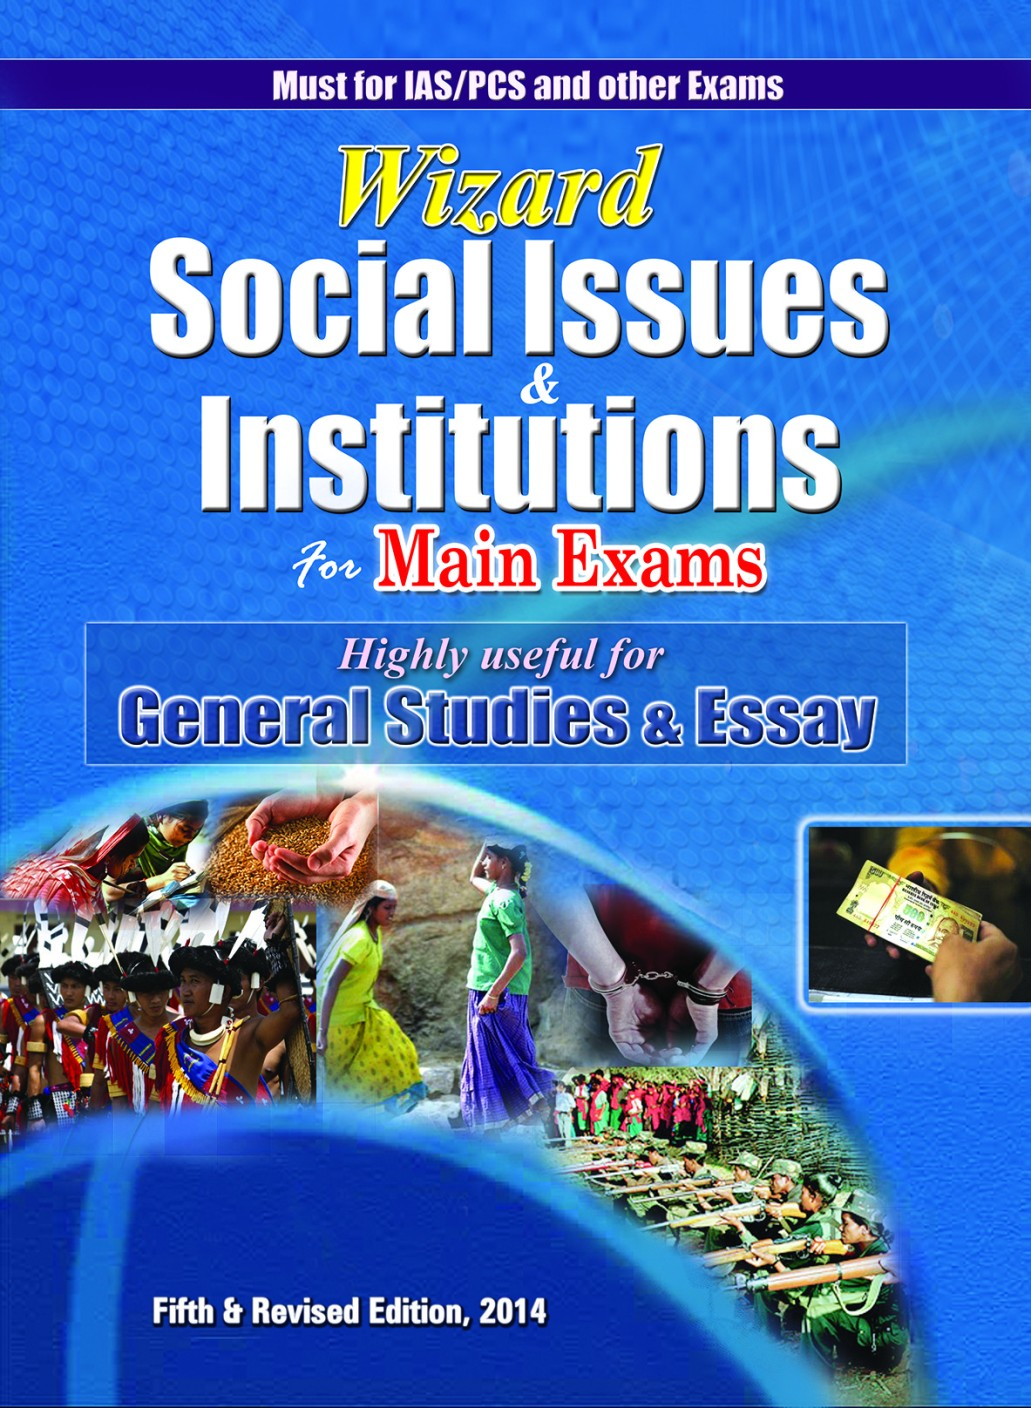 english essay social issues Free essays on social issues available at echeatcom, the largest free essay community.